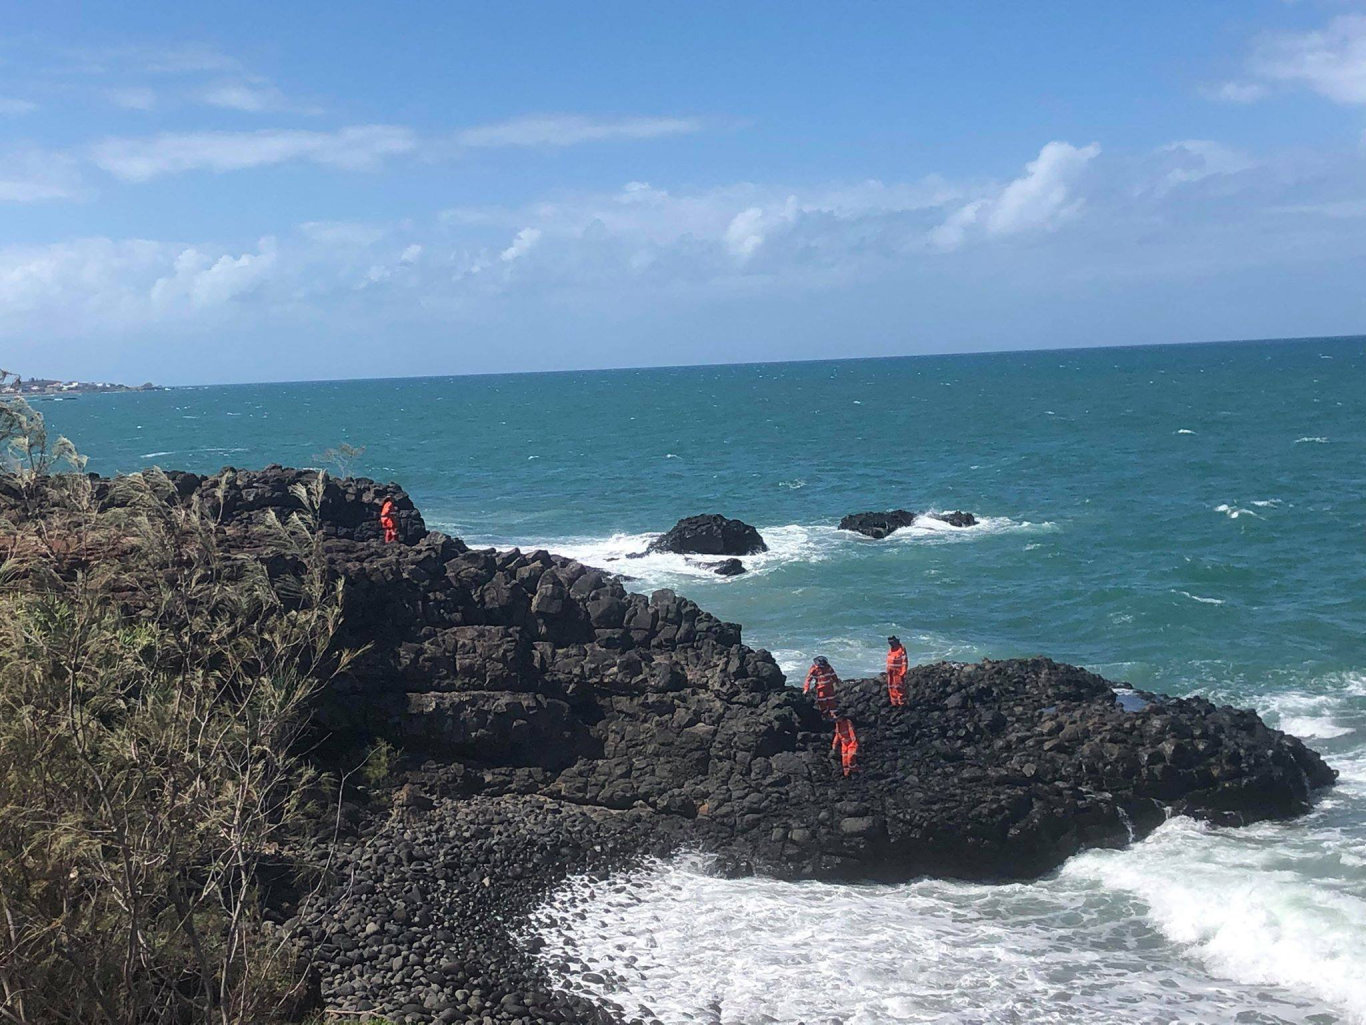 Police and SES volunteers are searching the coastline at Elliott Heads, looking for more suspicious packages that may have washed up.